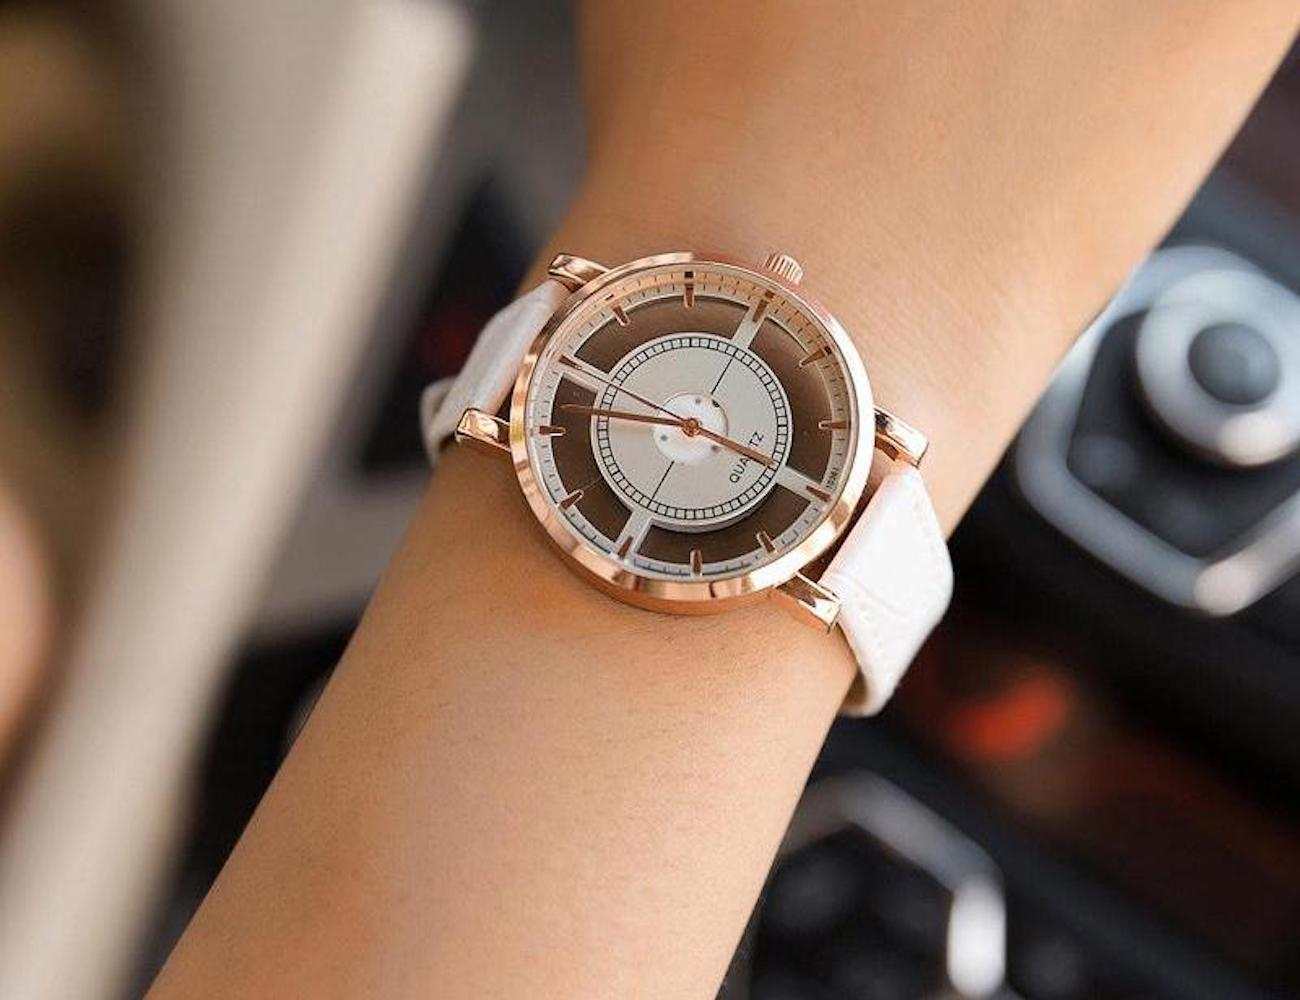 Luxury women 39 s watch gadget flow for Luxury women